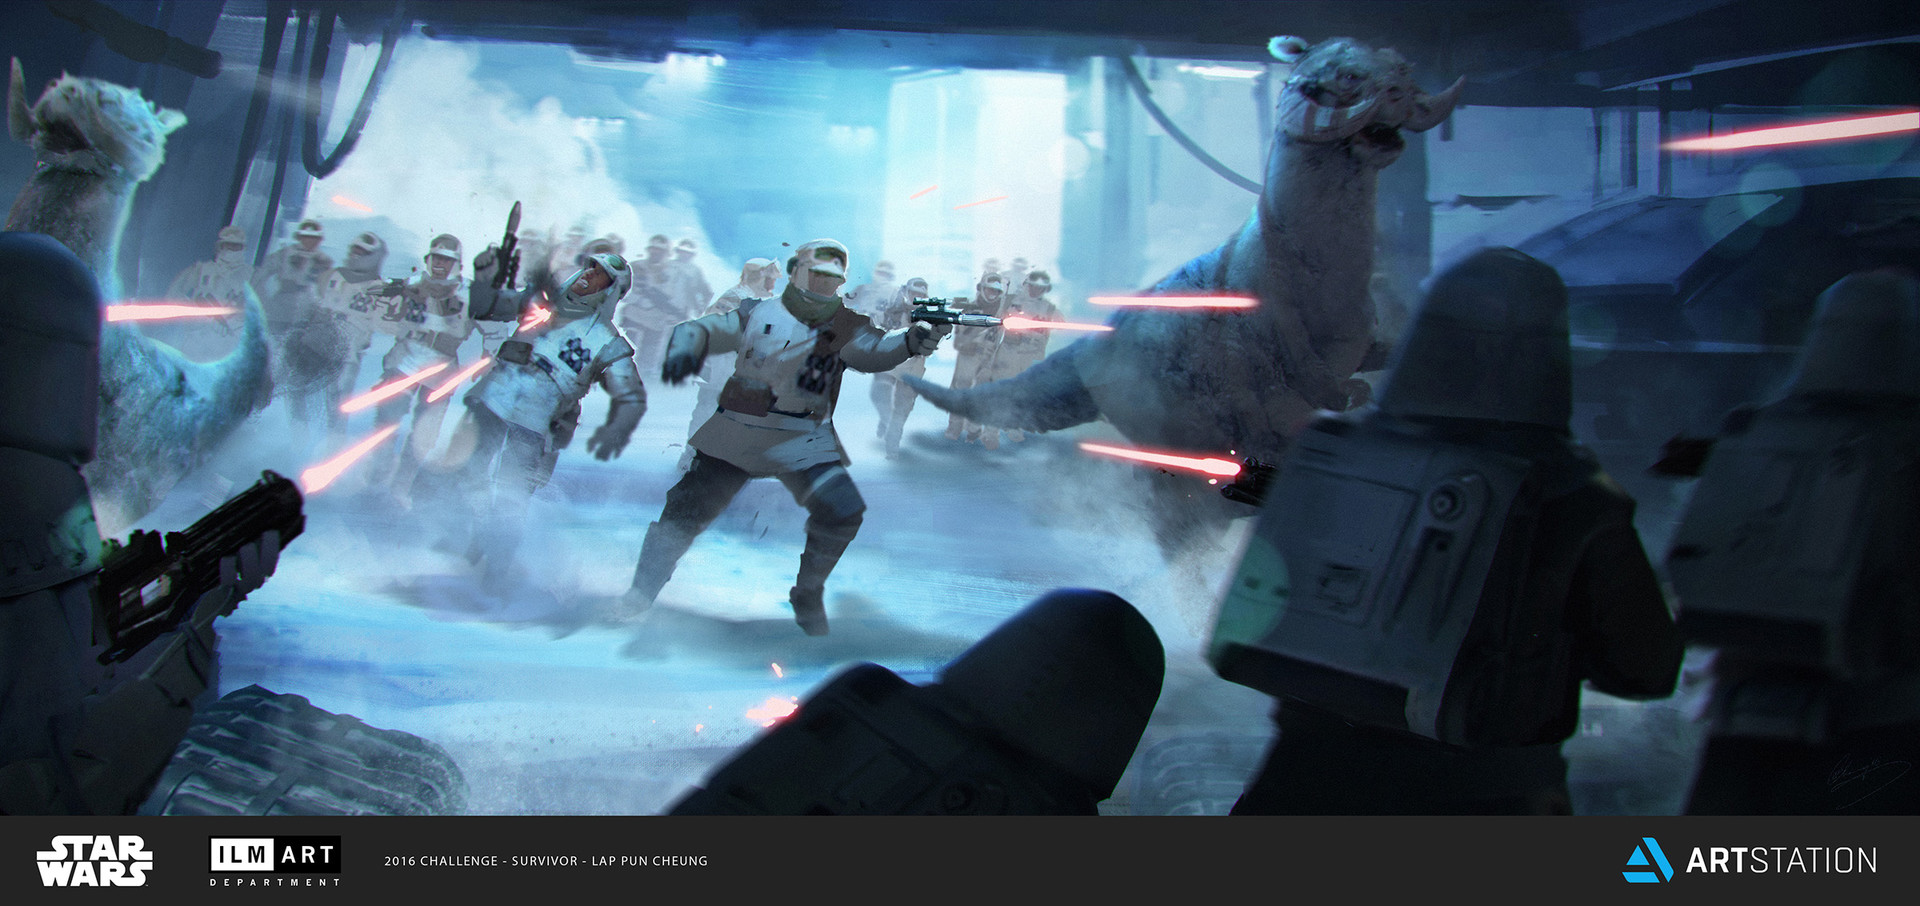 Lap pun cheung the job keyframe 1 prison break on hoth wip05 online